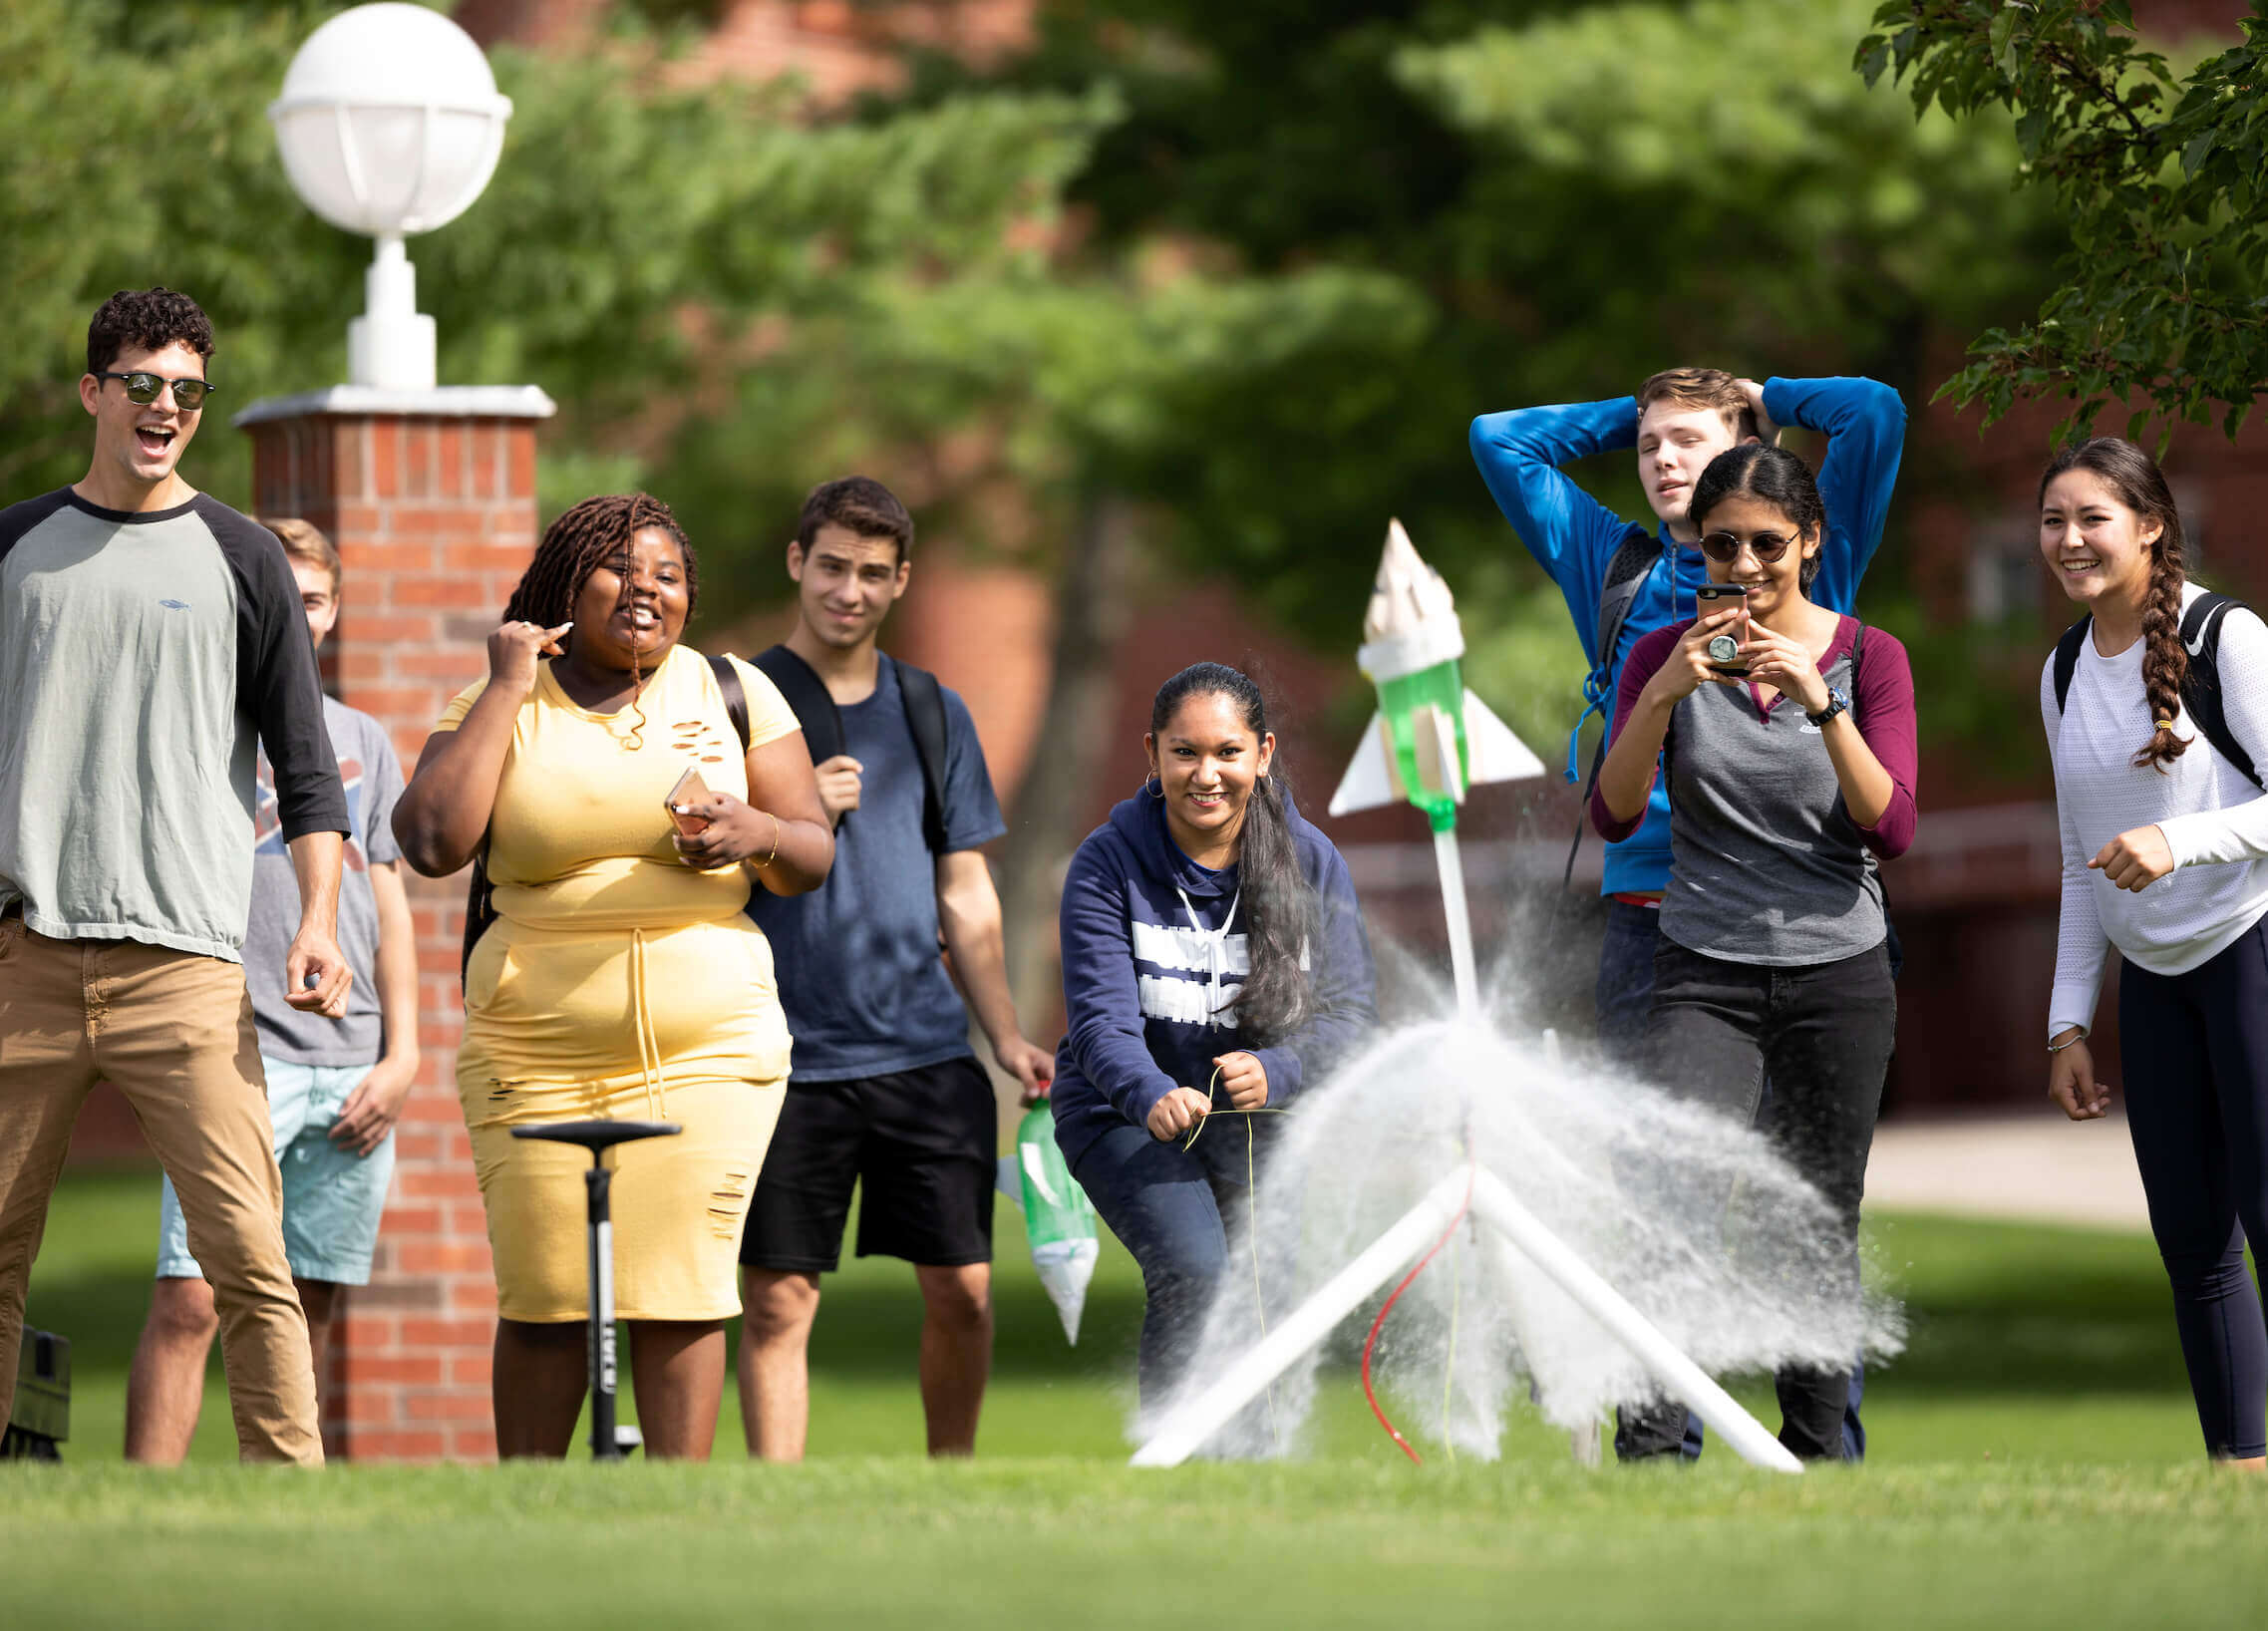 First-year engineering students launch water-bottle rockets into the air during class outside the Center for Communications and Engineering on Quinnipiac's Mount Carmel Campus